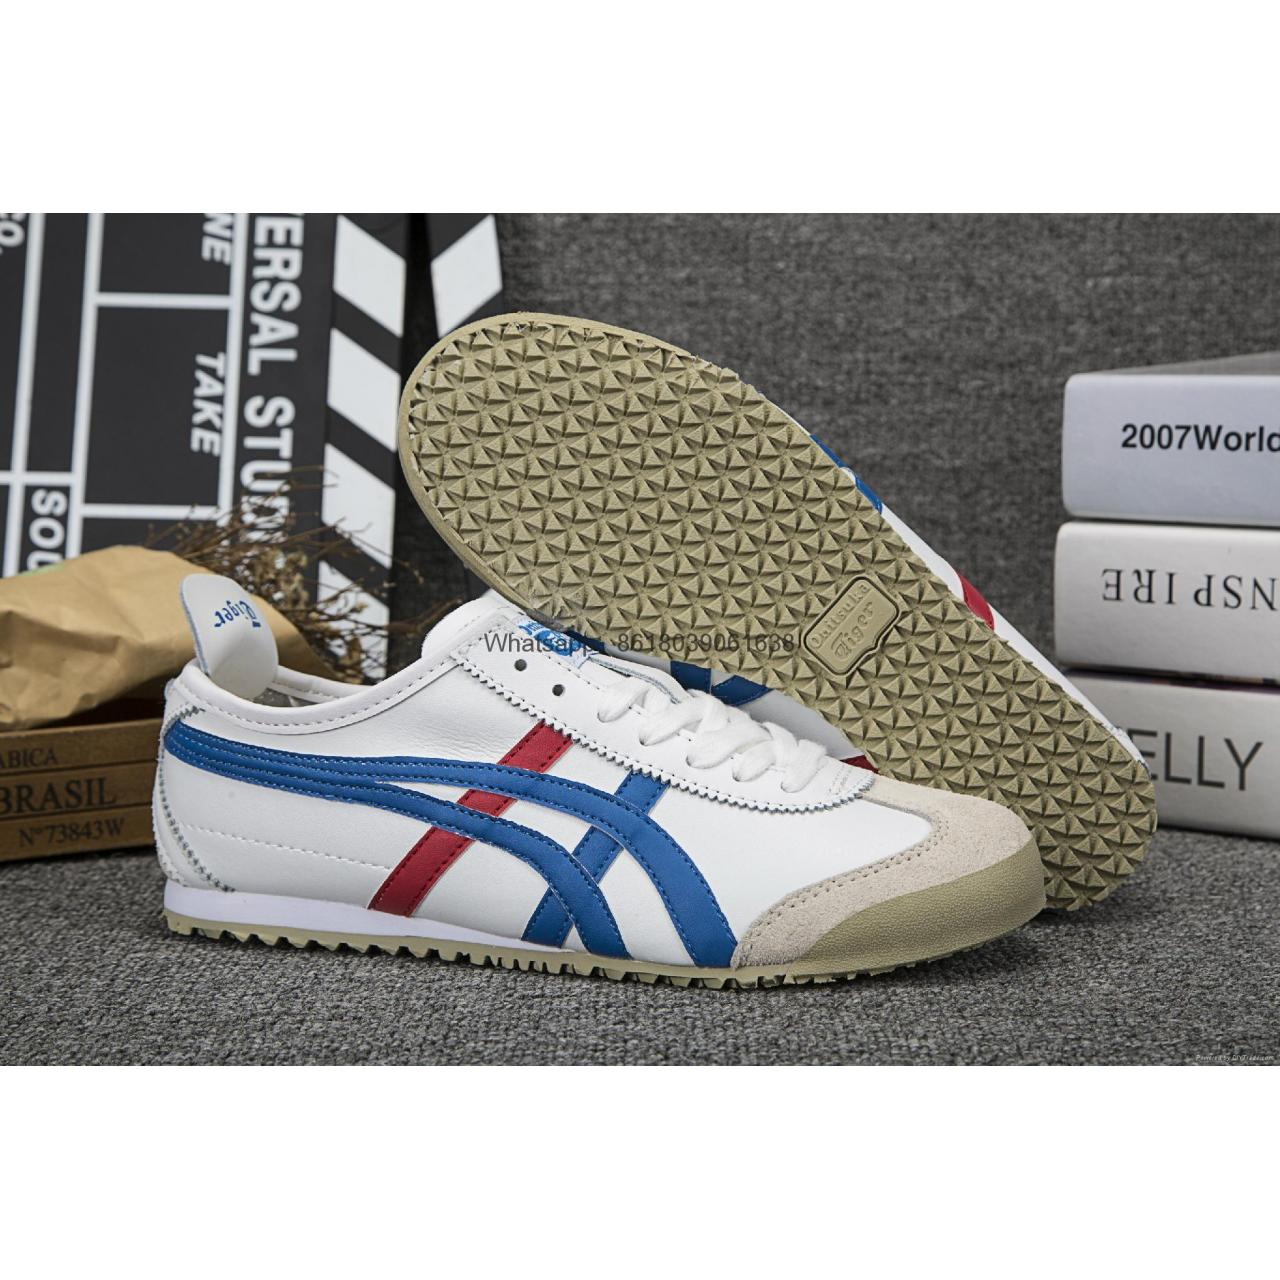 Asics Ghost burial tiger In the summer MEXICO66 classic Casual shoes Manufactures